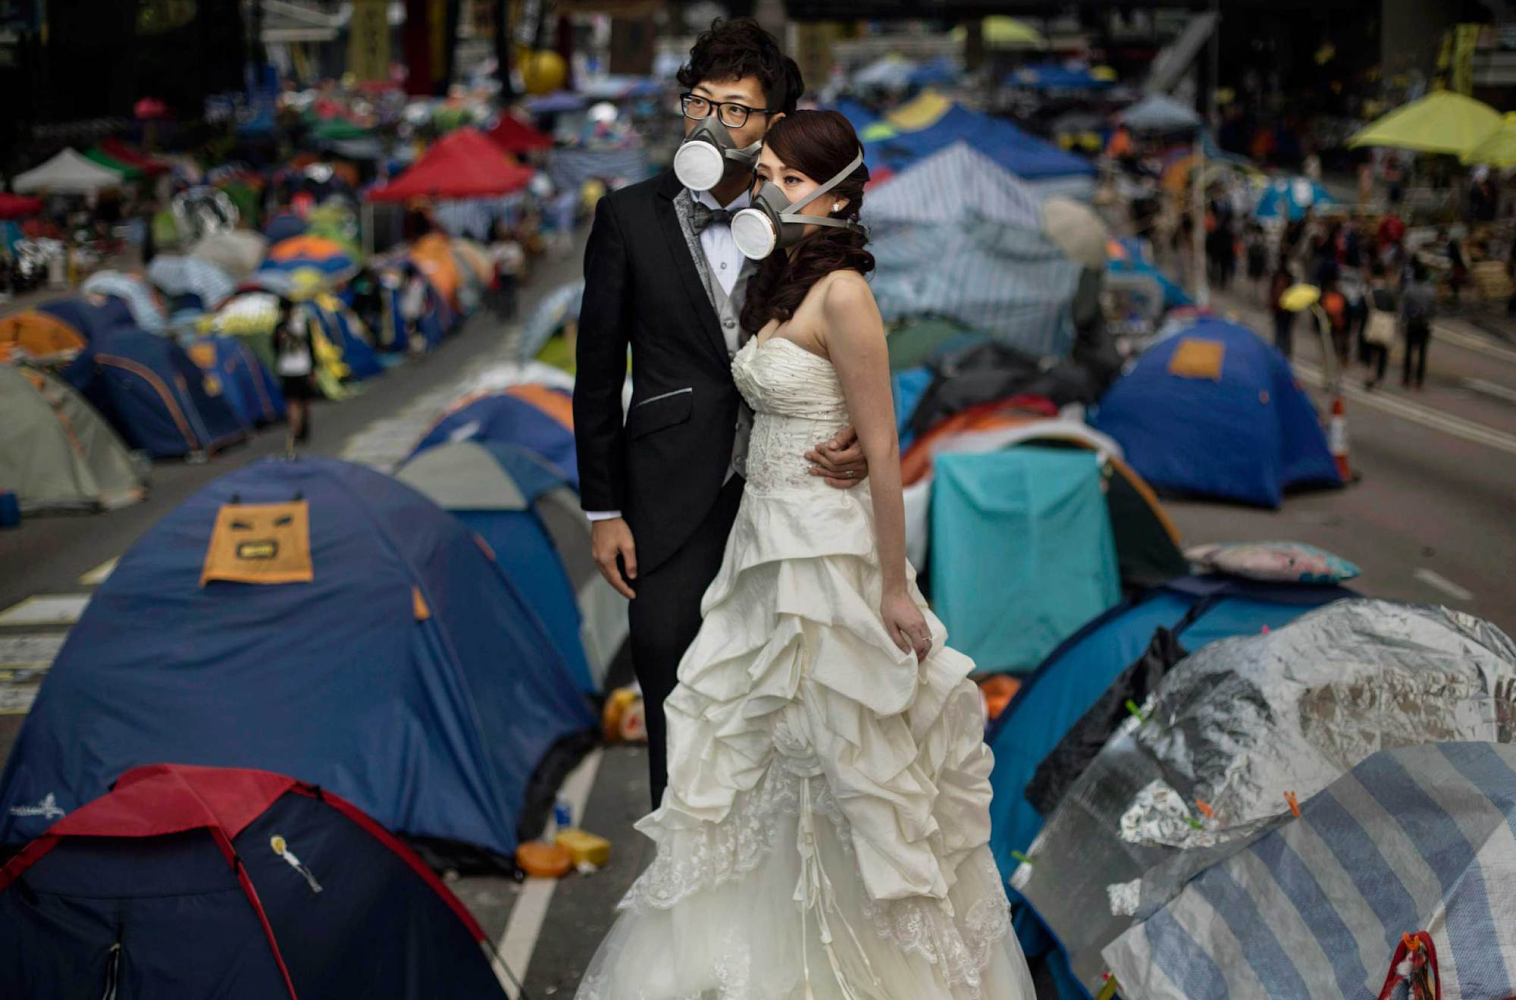 A newlywed couple wears gas masks while taking wedding photos beside pro-democracy demonstrators at the Admiralty protest site in Hong Kong. Source: Kevin Frayer/Getty Images.